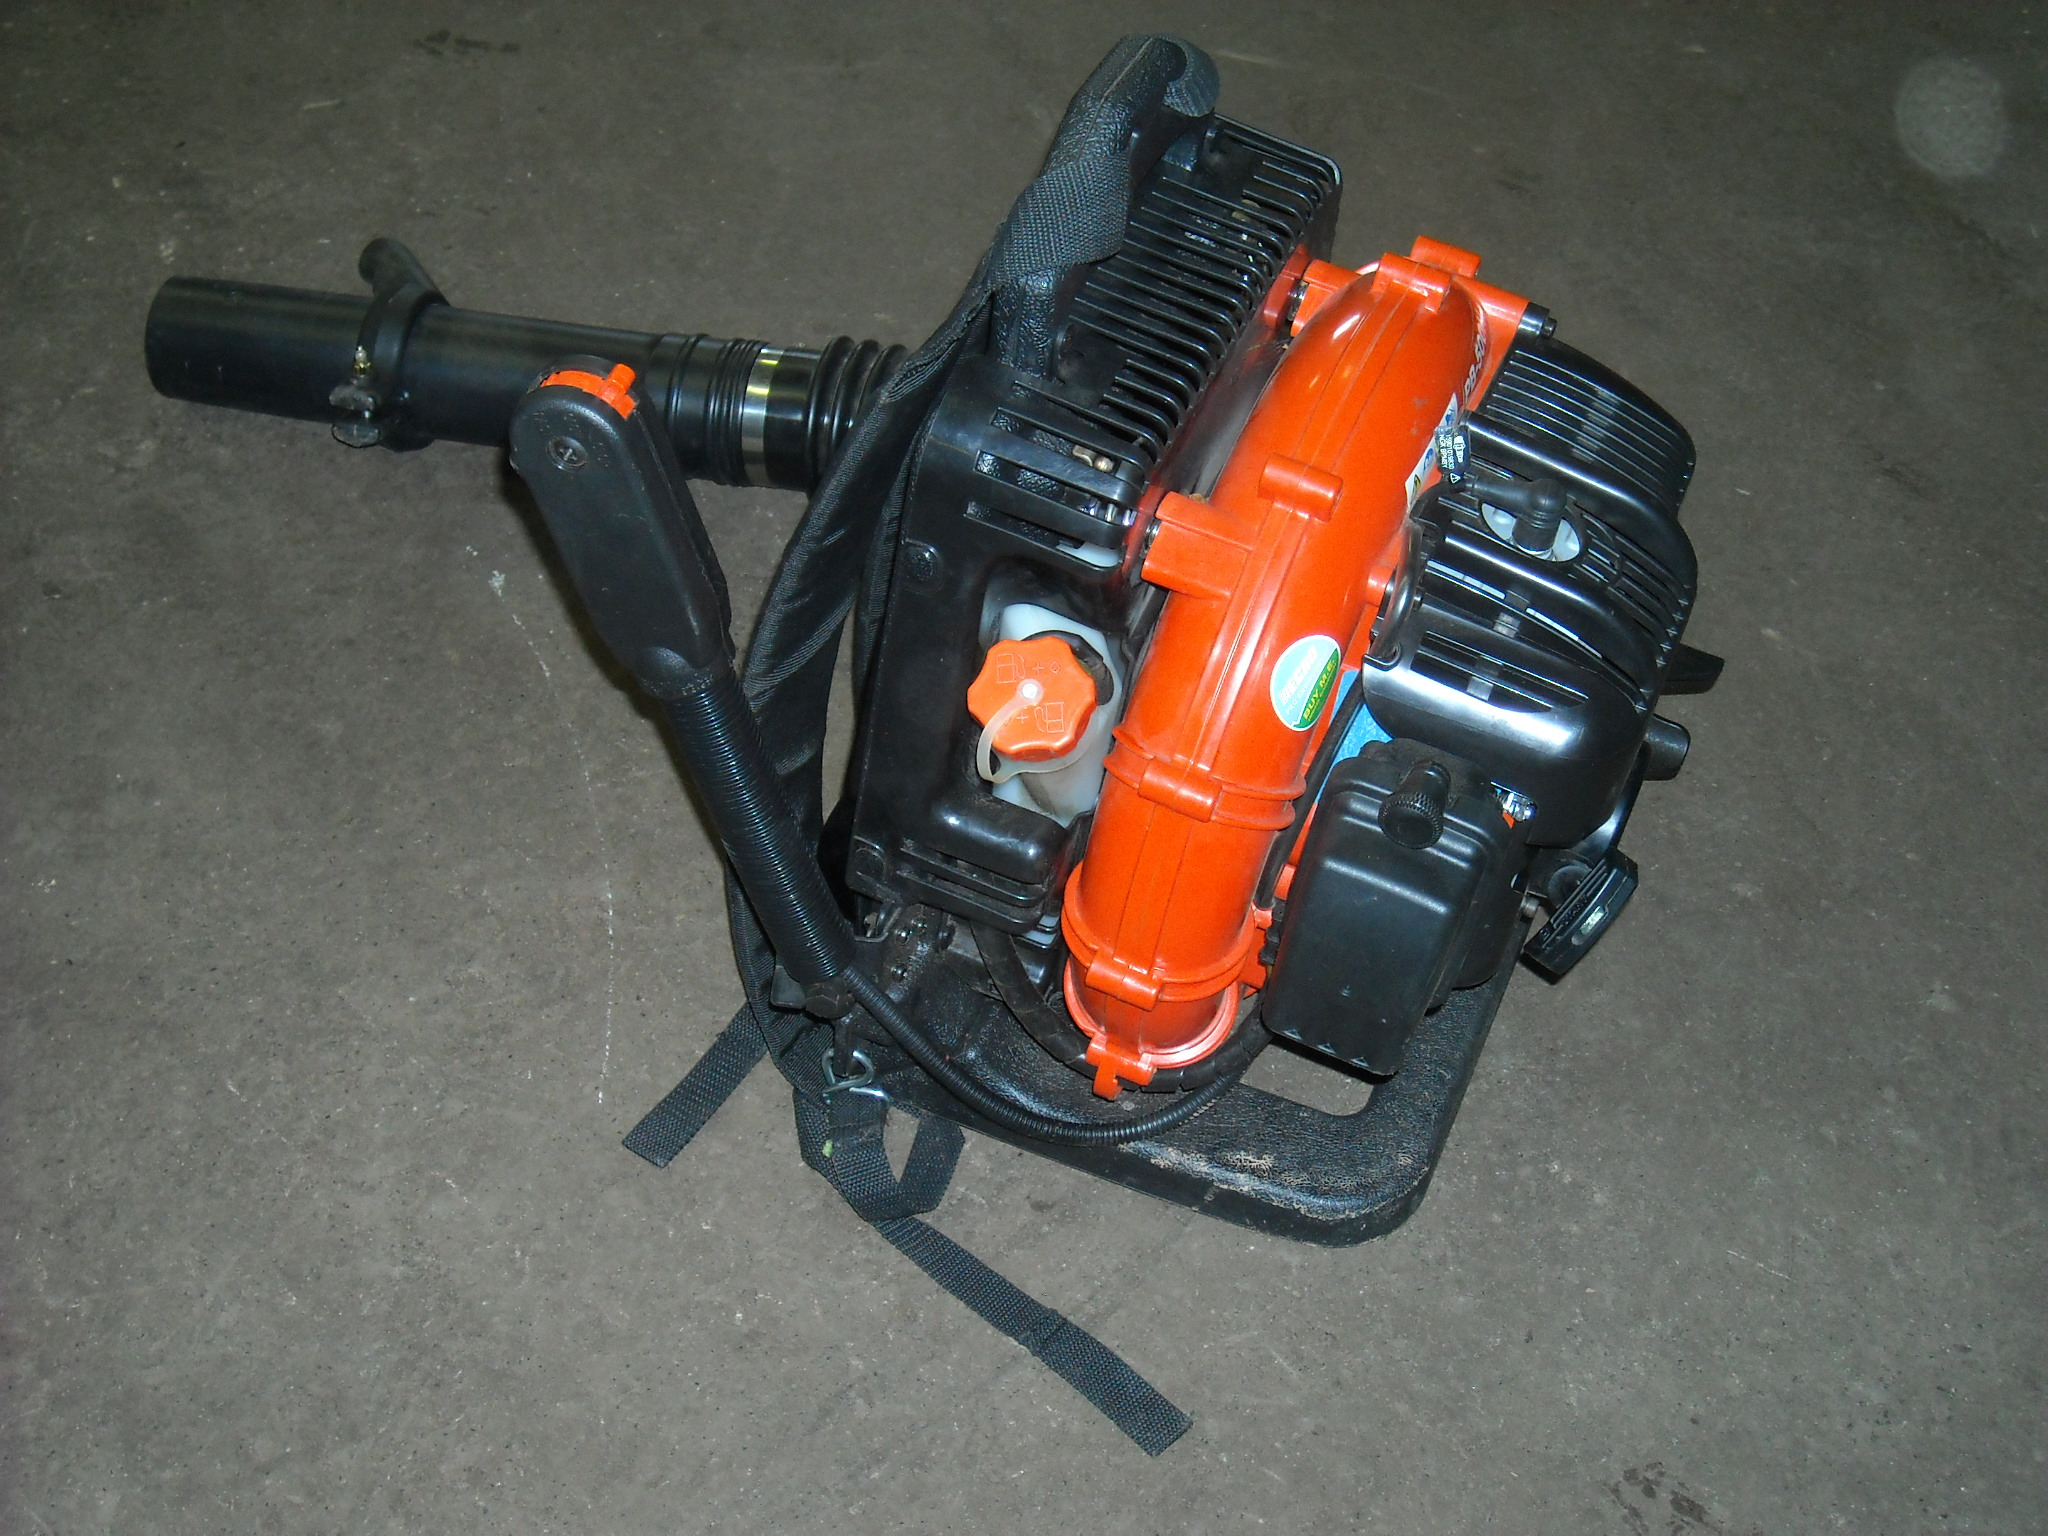 Craftsman Leaf Blower Engine Parts Apps Directories #C23F09